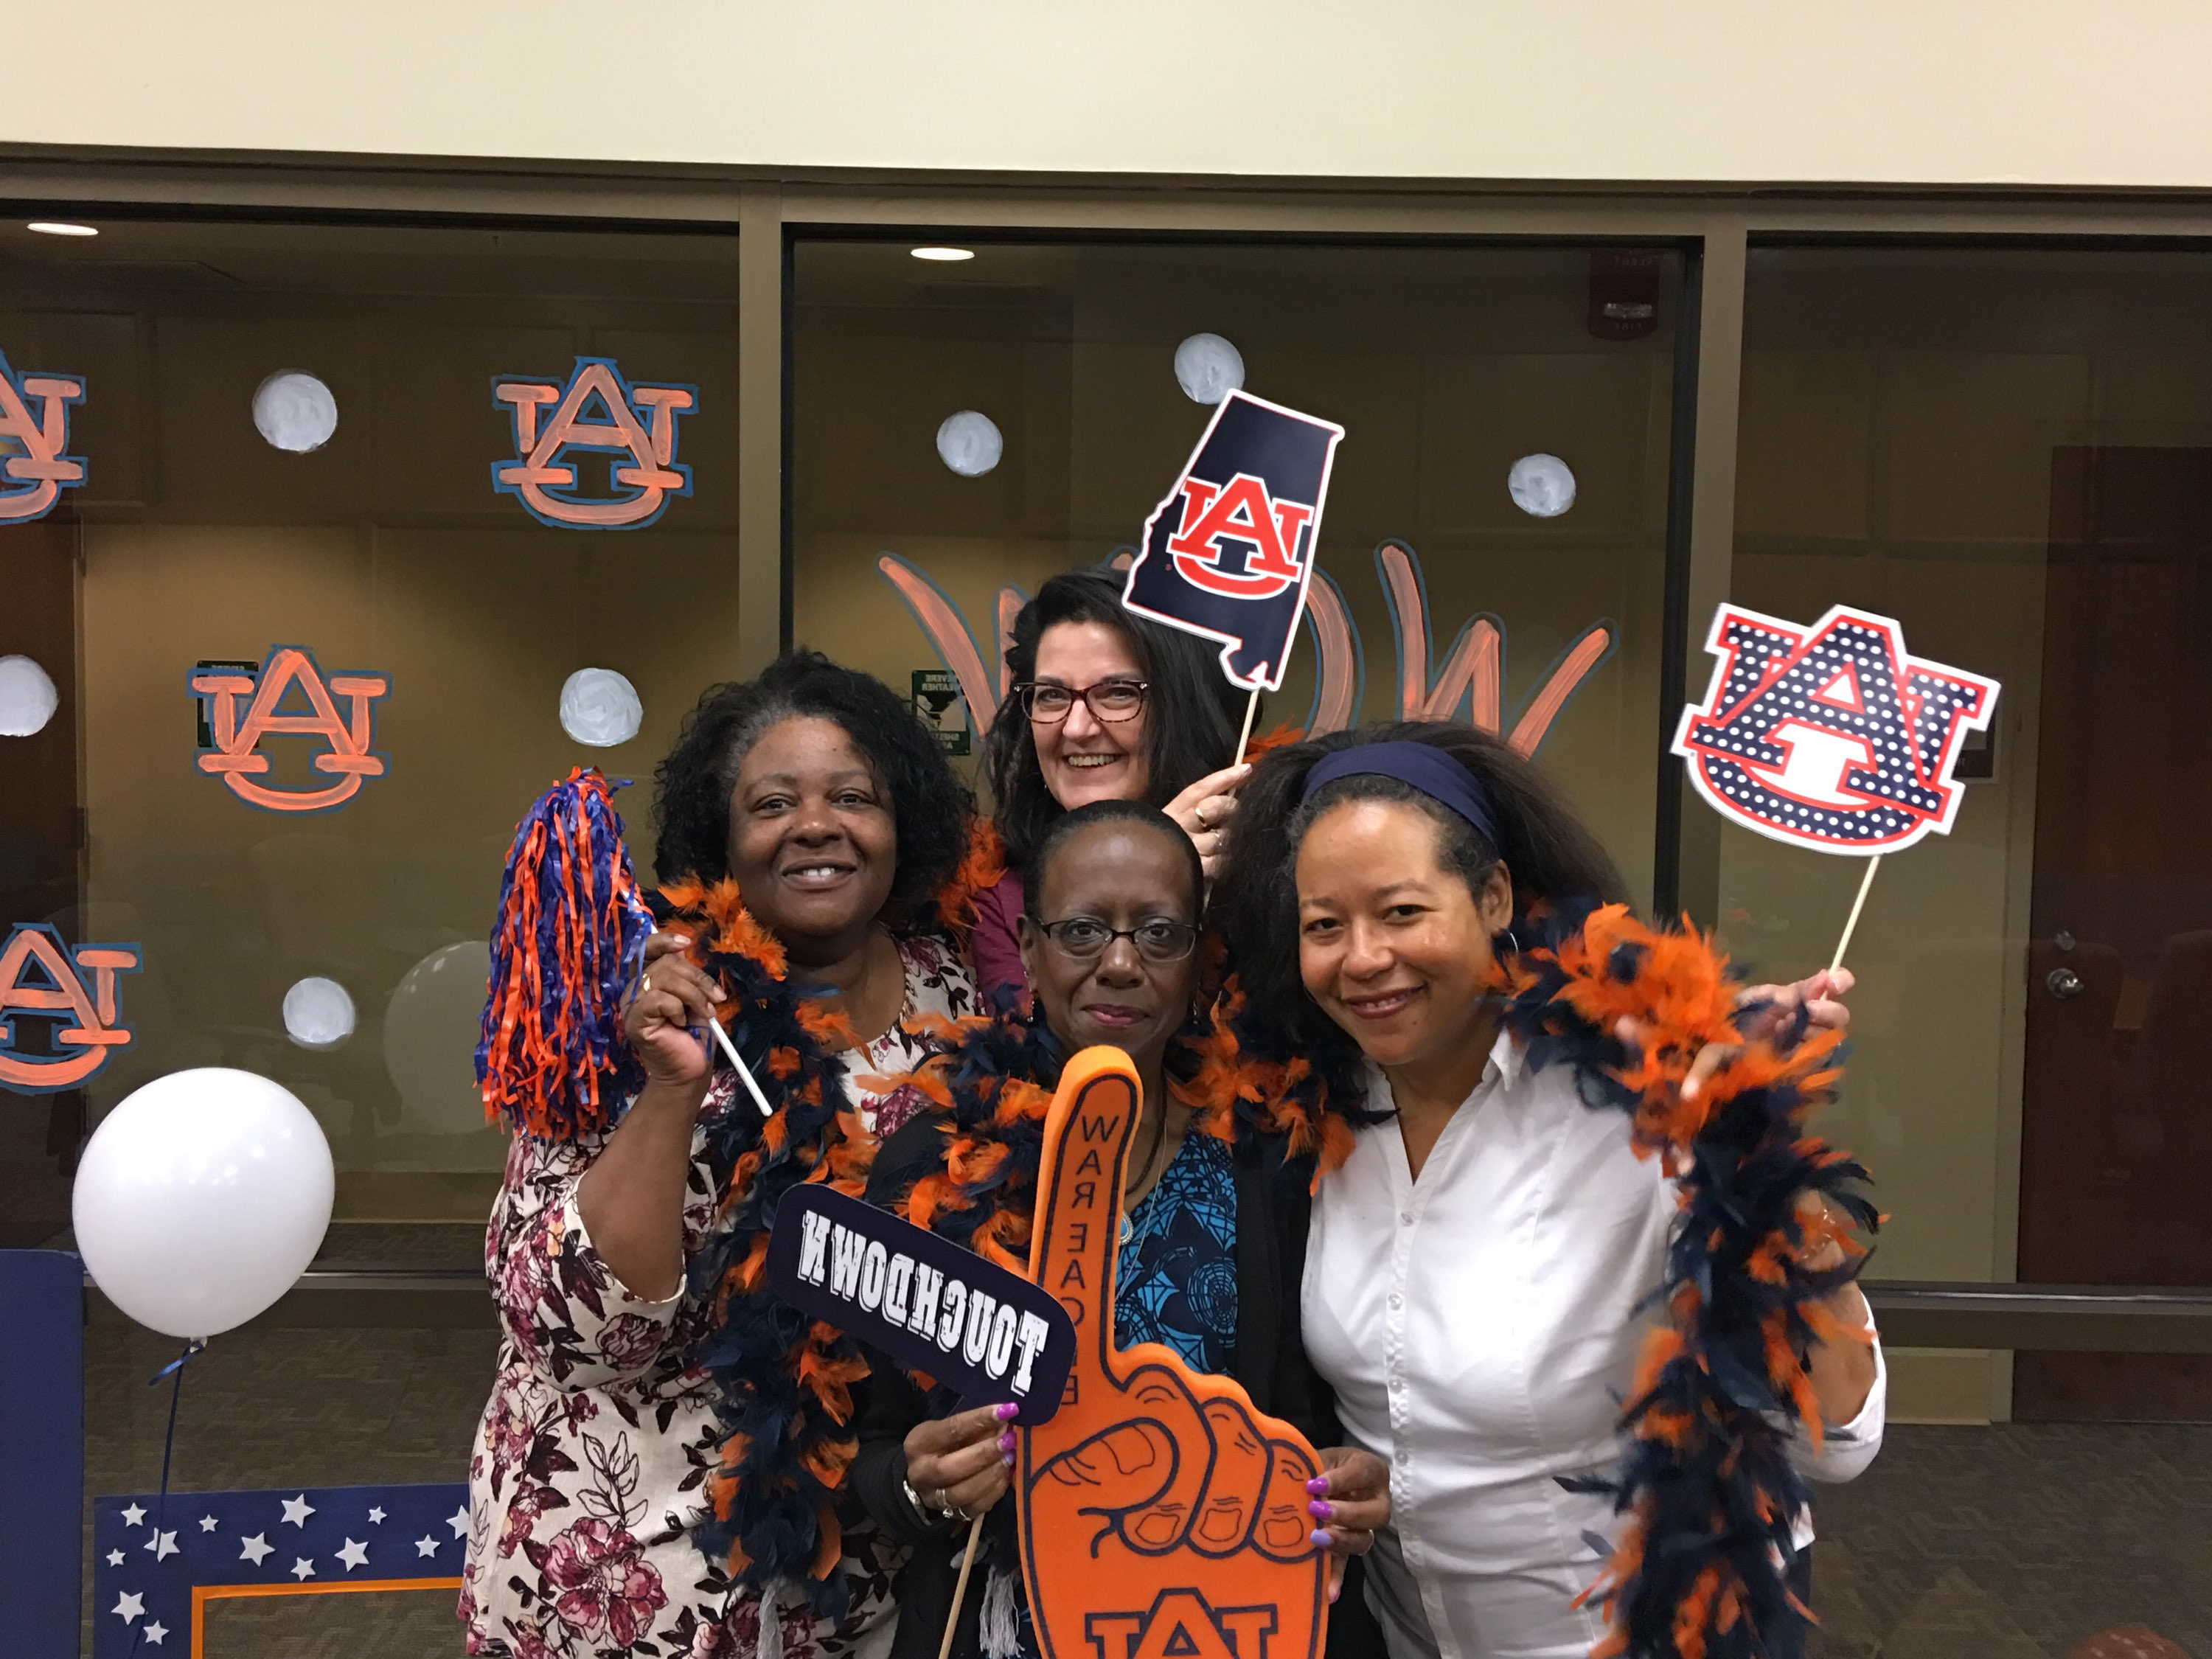 four women in Auburn apparel